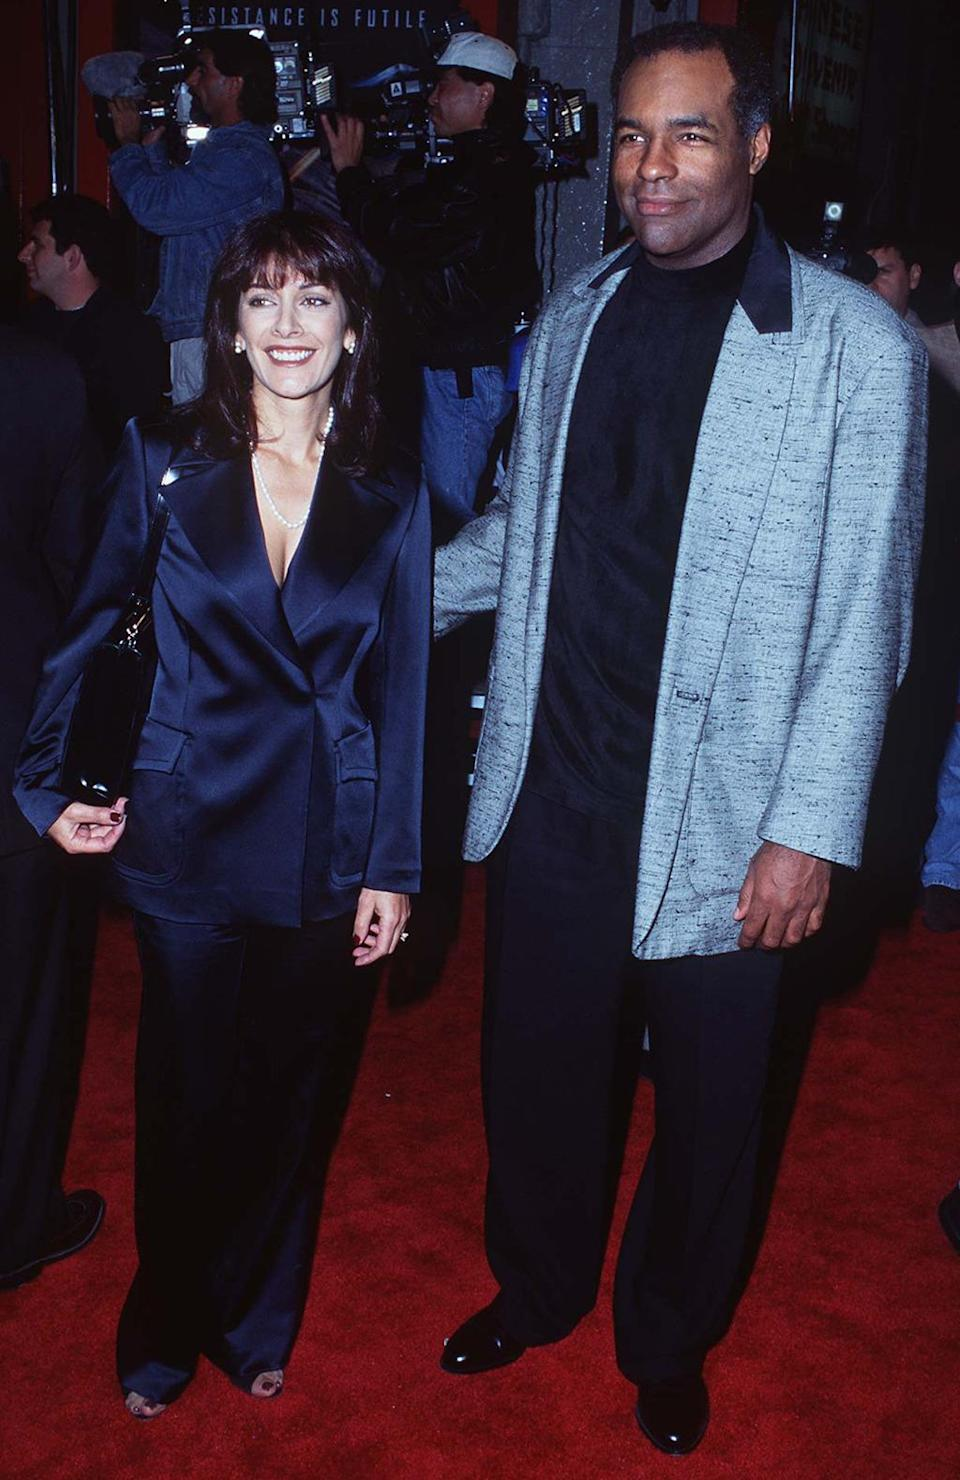 <p>Michael Dorn (Worf, <i>The Next Generation</i>) and Marina Sirtis (Deanna Troy, <i>The Next Generation</i>). Dorn would reprise his Worf role in two episodes of <i>Family Guy </i>years later, while Sirtis voiced Computer in the <i>Star Trek Continues </i>webseries. <i>(Photo: Steve Granitz/WireImage)</i></p>